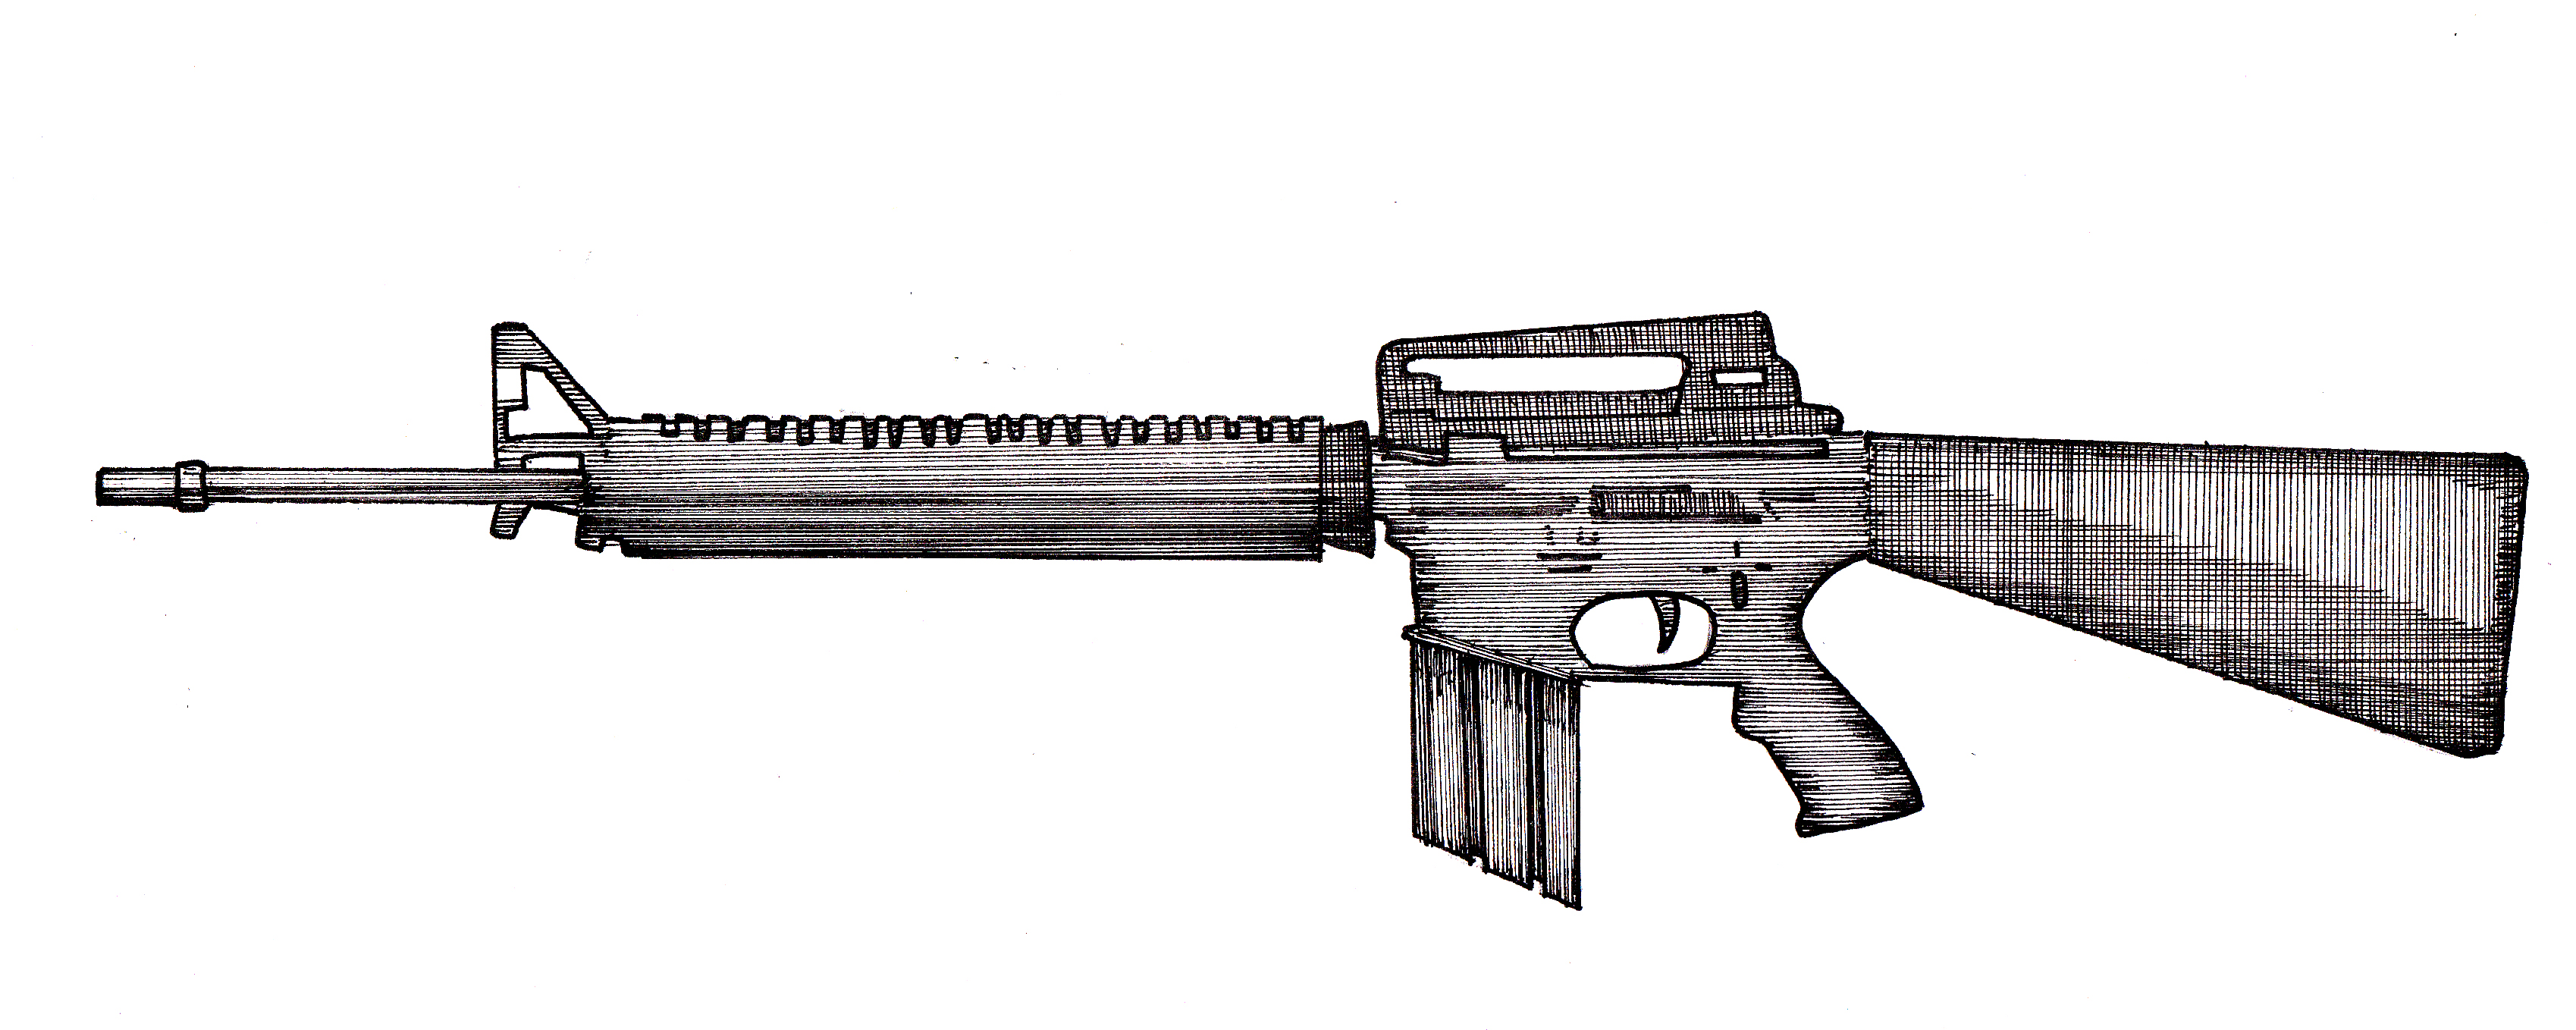 M16 Drawing | www.imgkid.com - The Image Kid Has It! M16